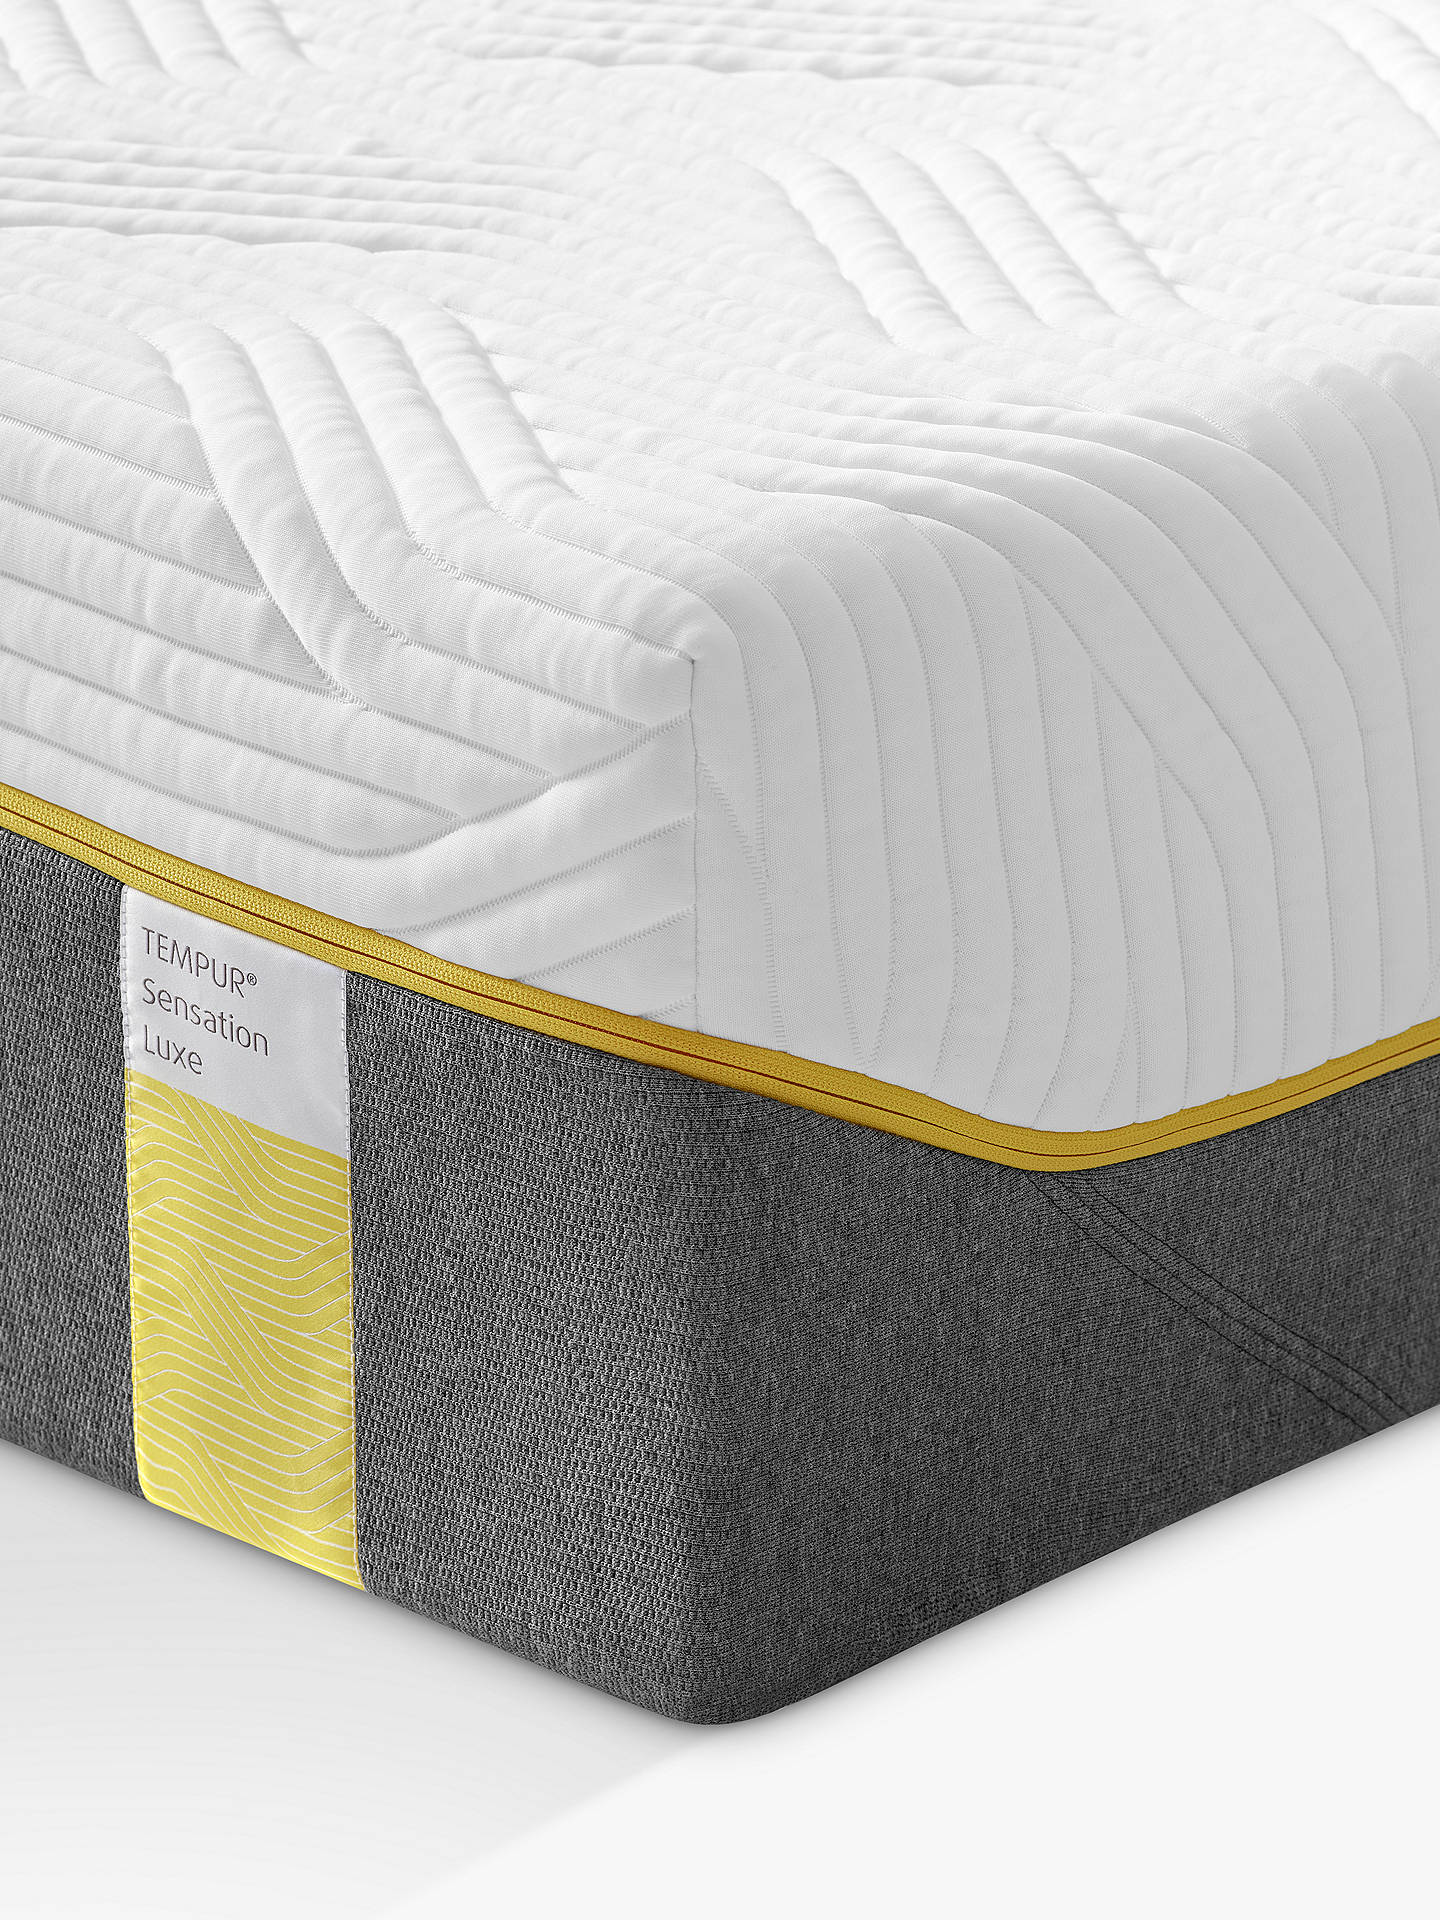 BuyTempur Sensation Luxe 30 Memory Foam Mattress, Medium, Super King Size Online at johnlewis.com